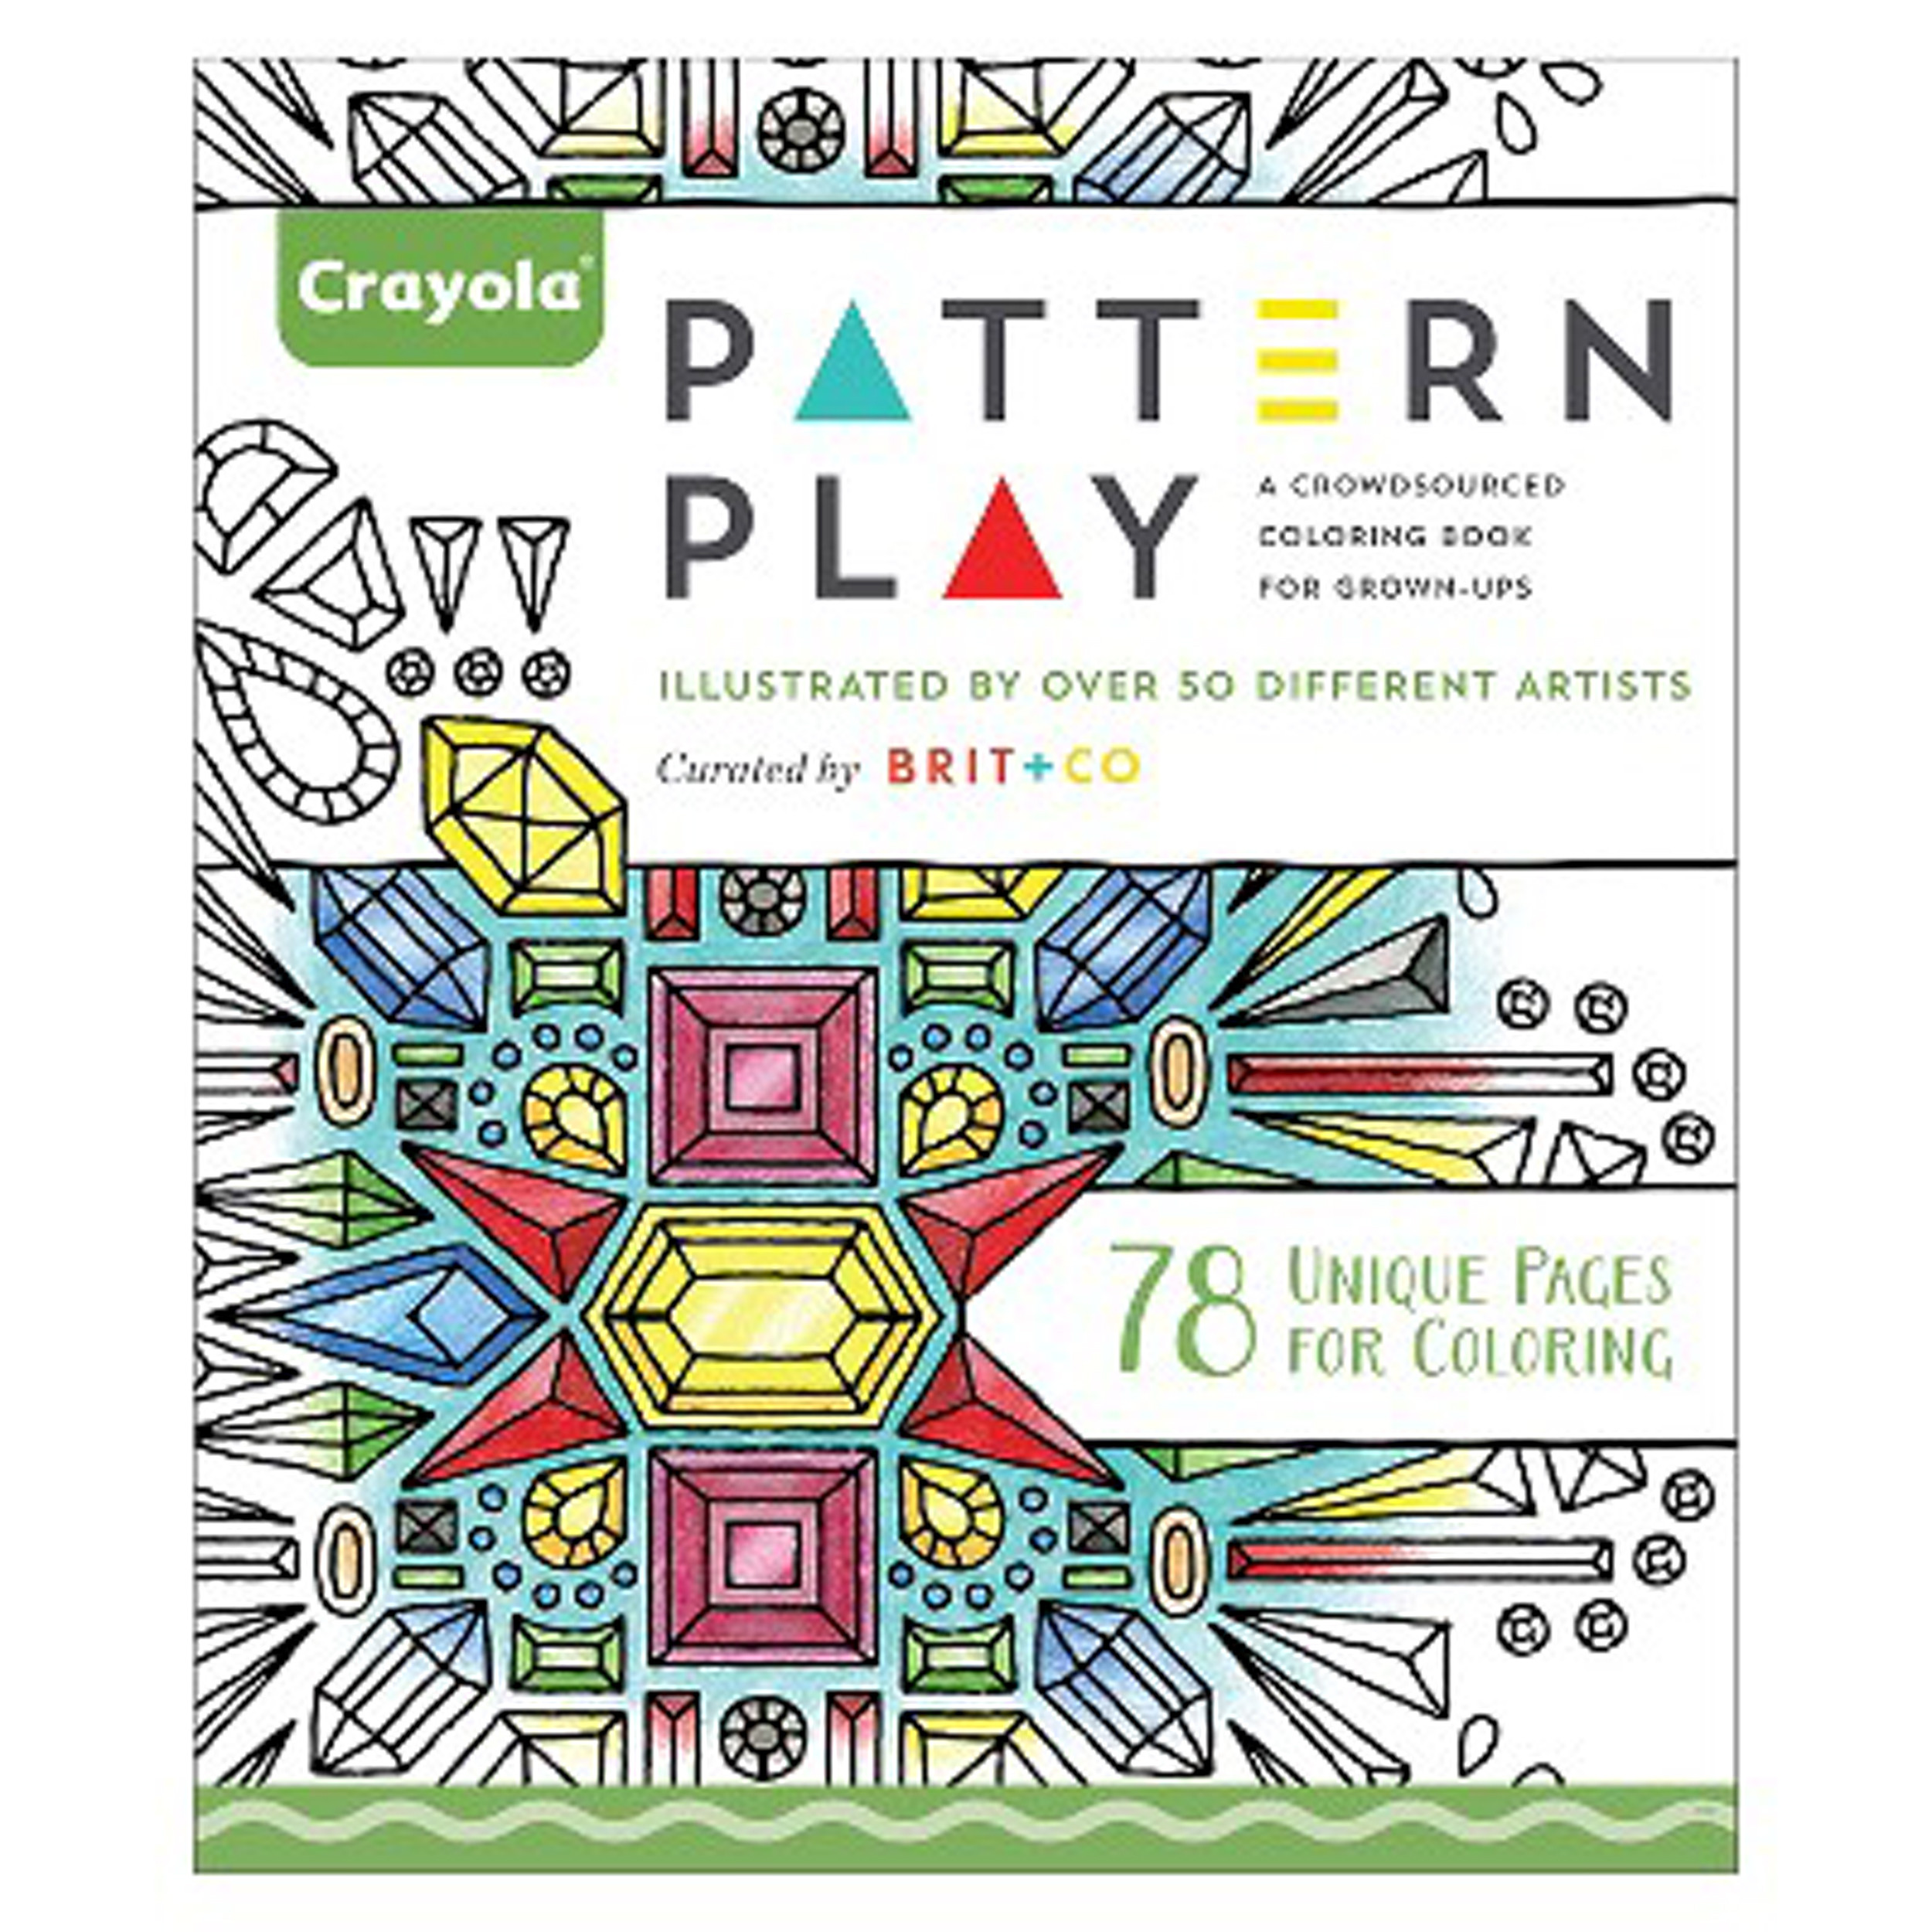 Best ideas about Crayola Adult Coloring Books . Save or Pin Artistry Meets Lines in New Adult Coloring Book Now.